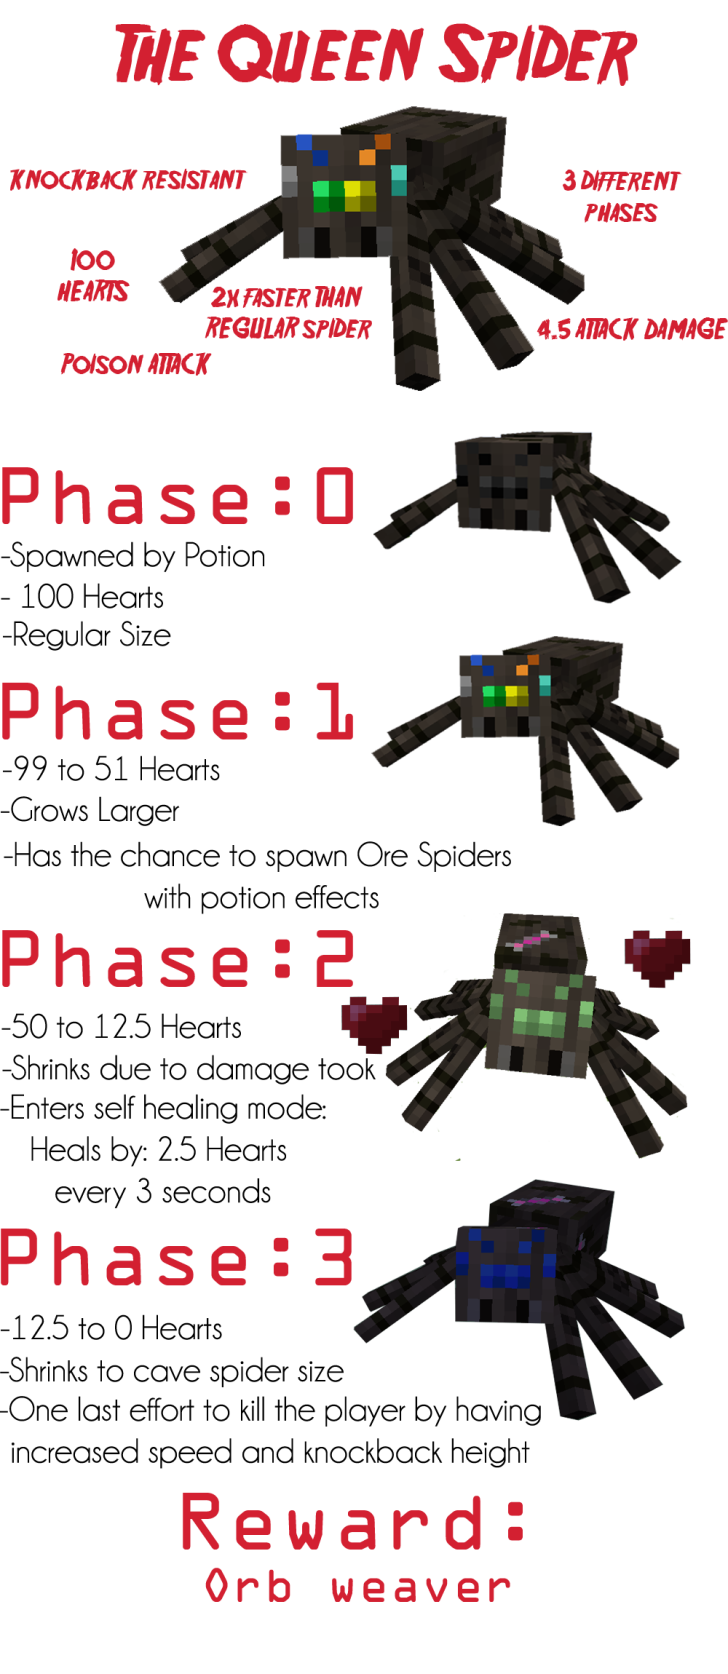 Ore-Spiders-Mod-13